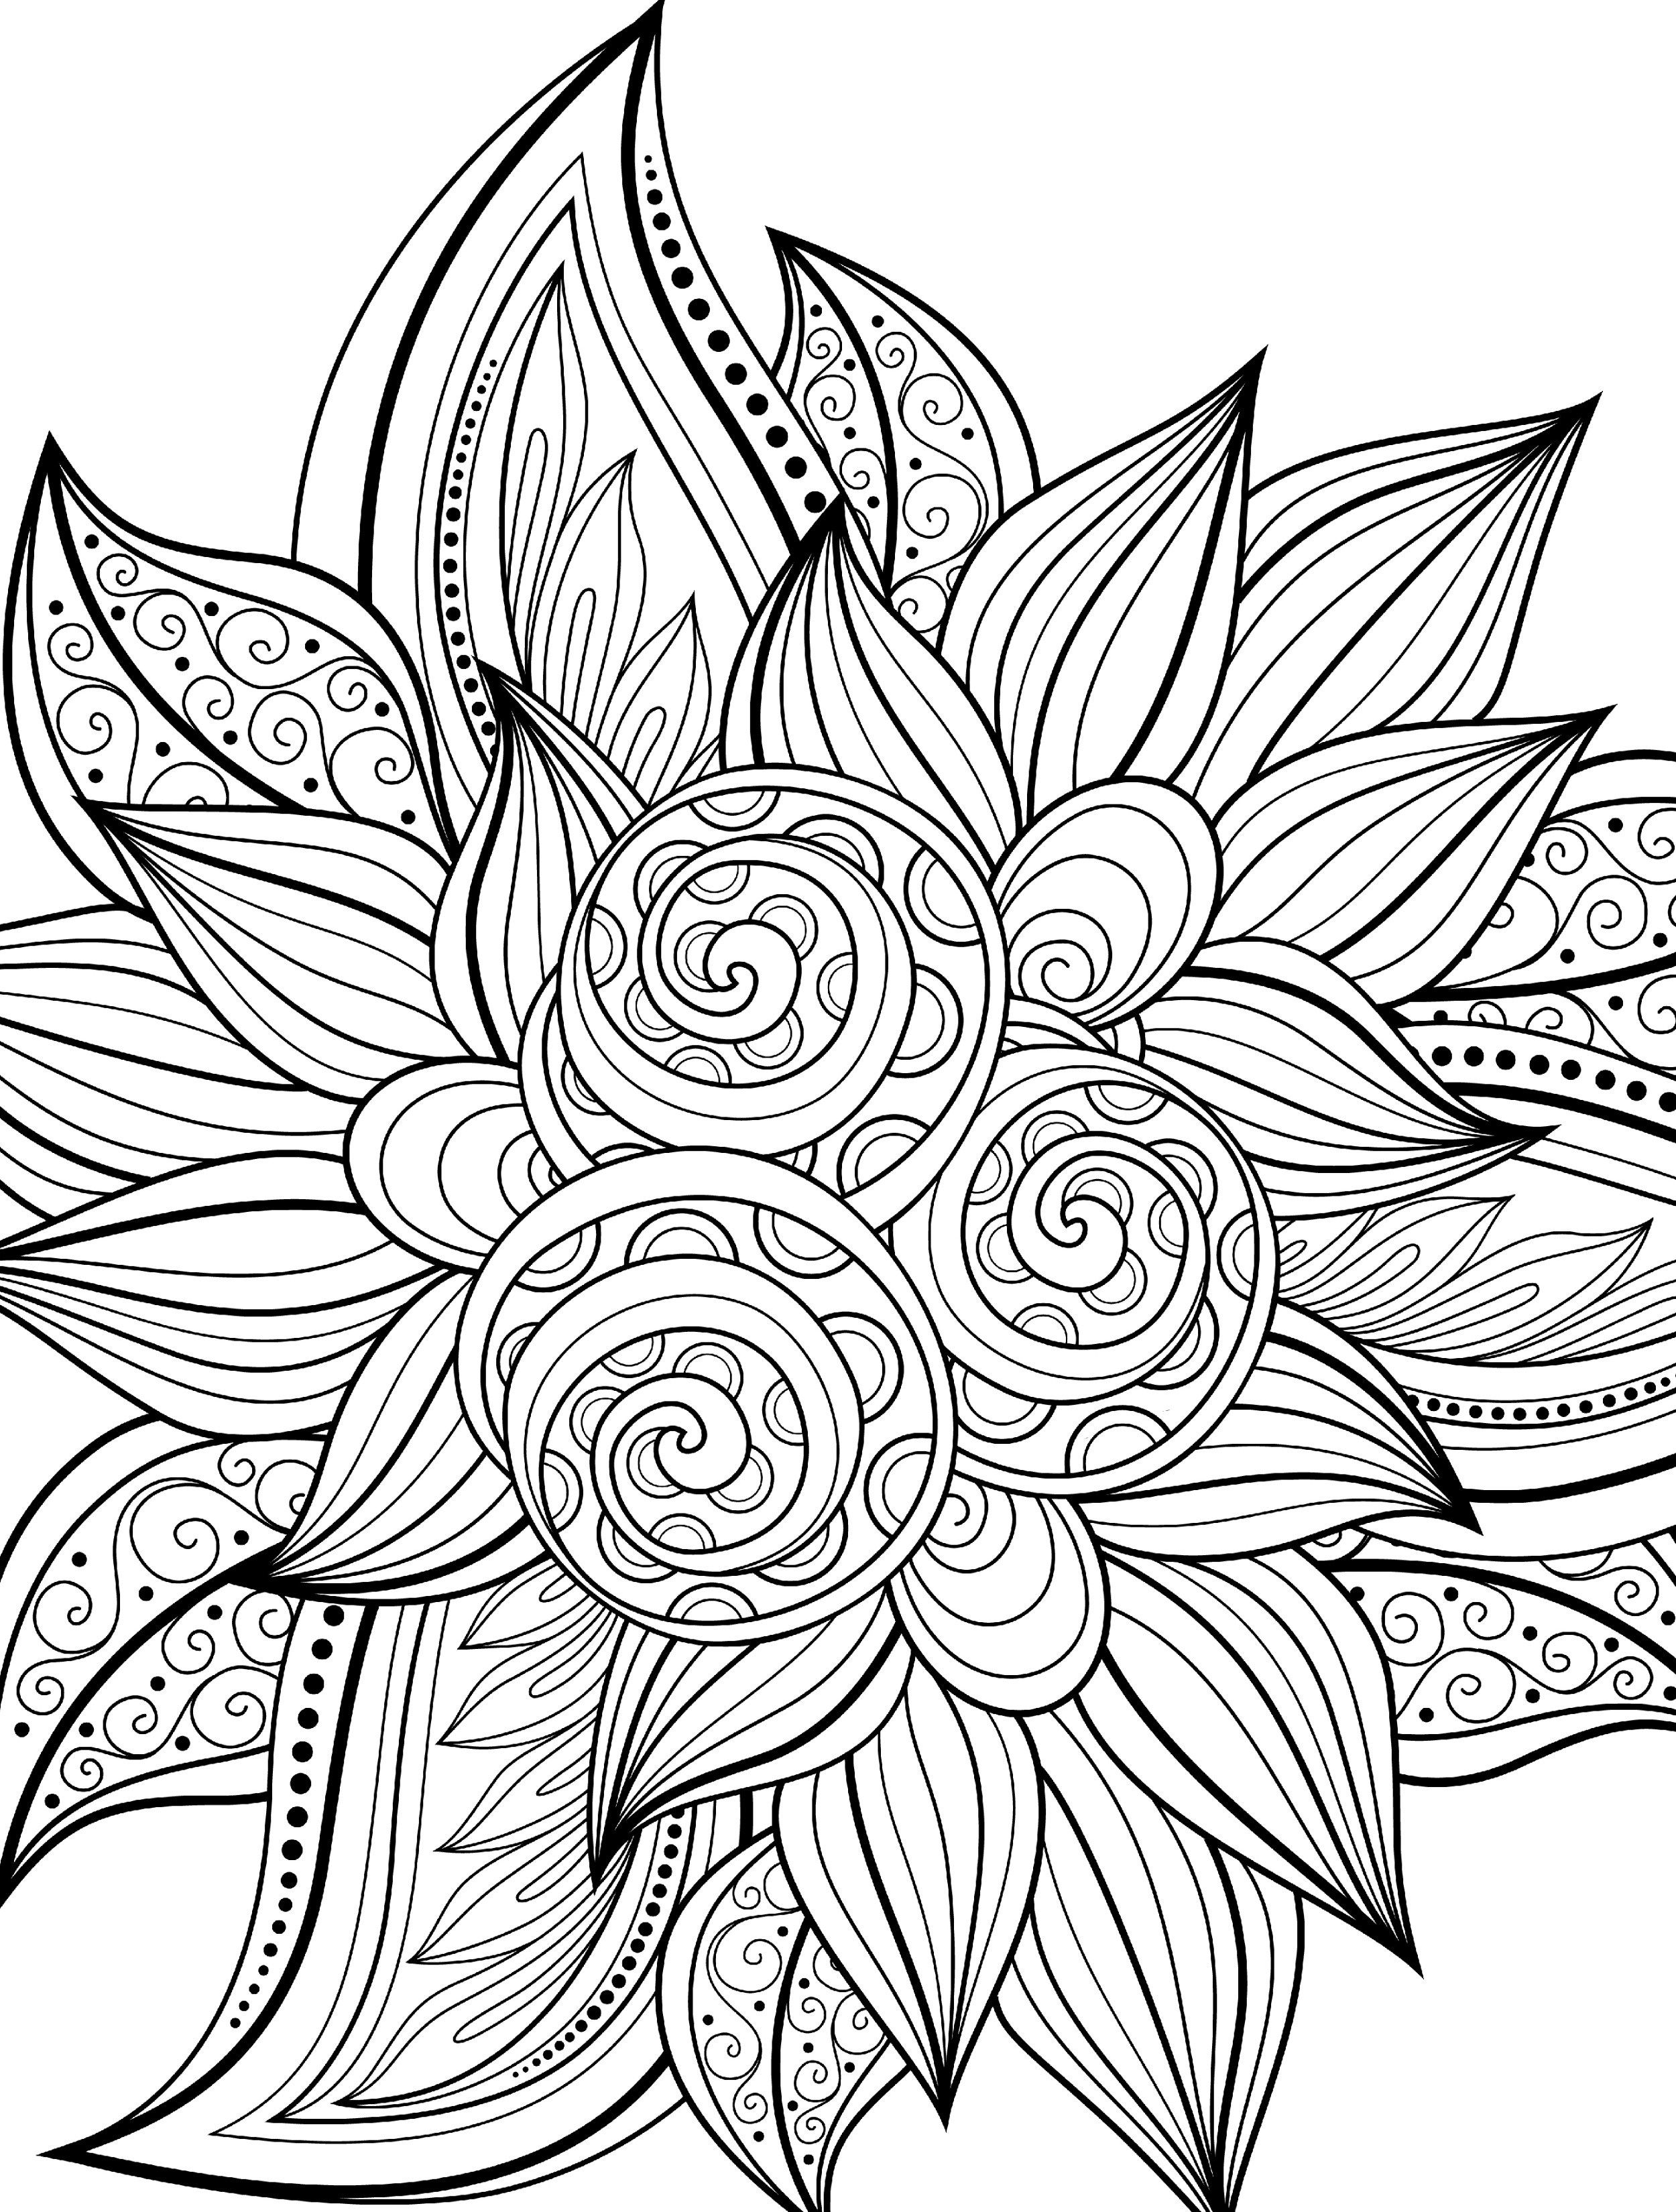 10 Free Printable Holiday Adult Coloring Pages   Coloring